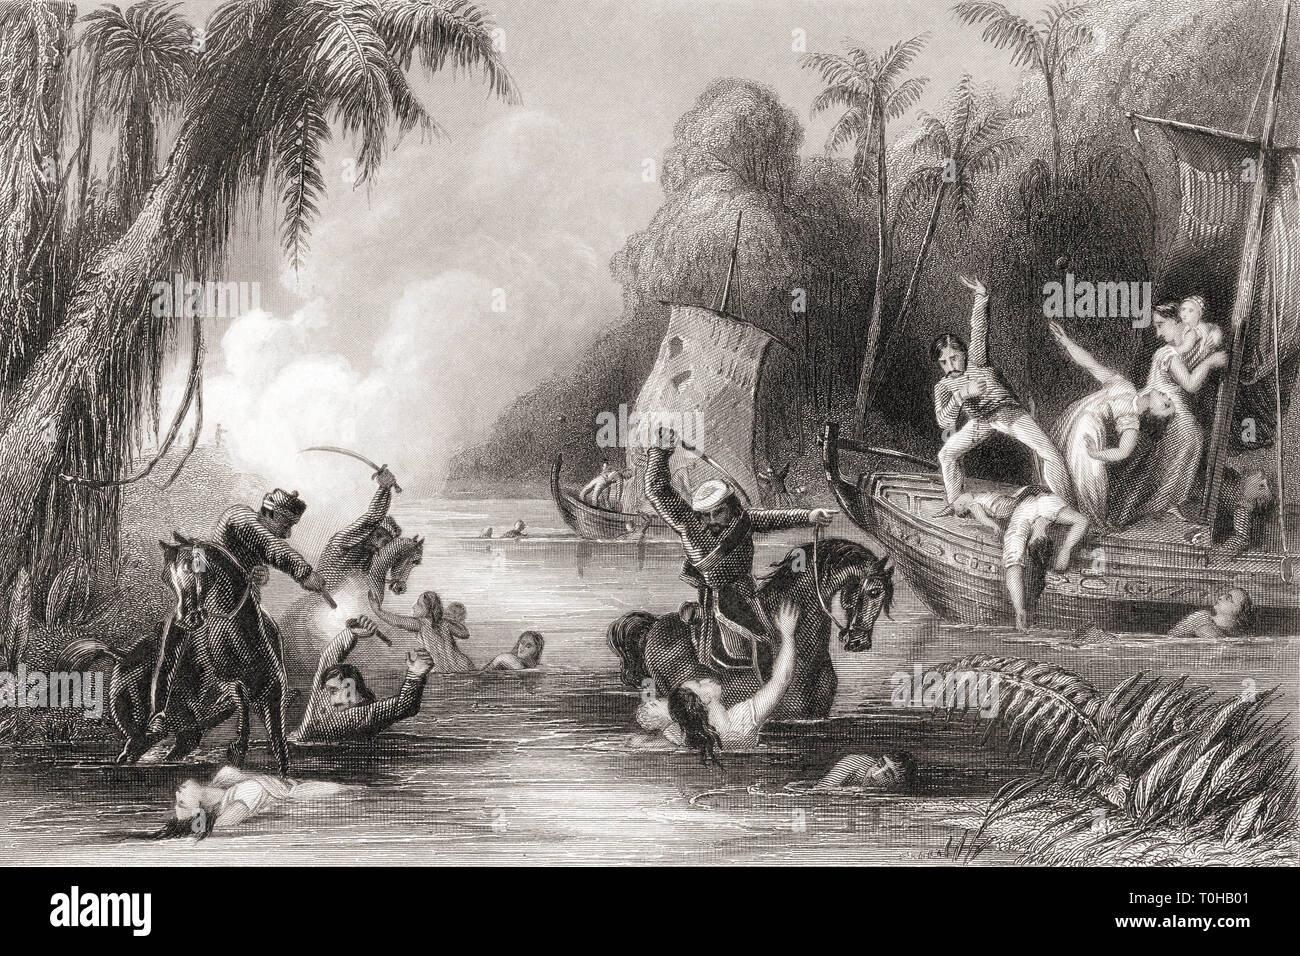 Massacre in the boats of Cawnpore, India, Asia, 1857 - Stock Image